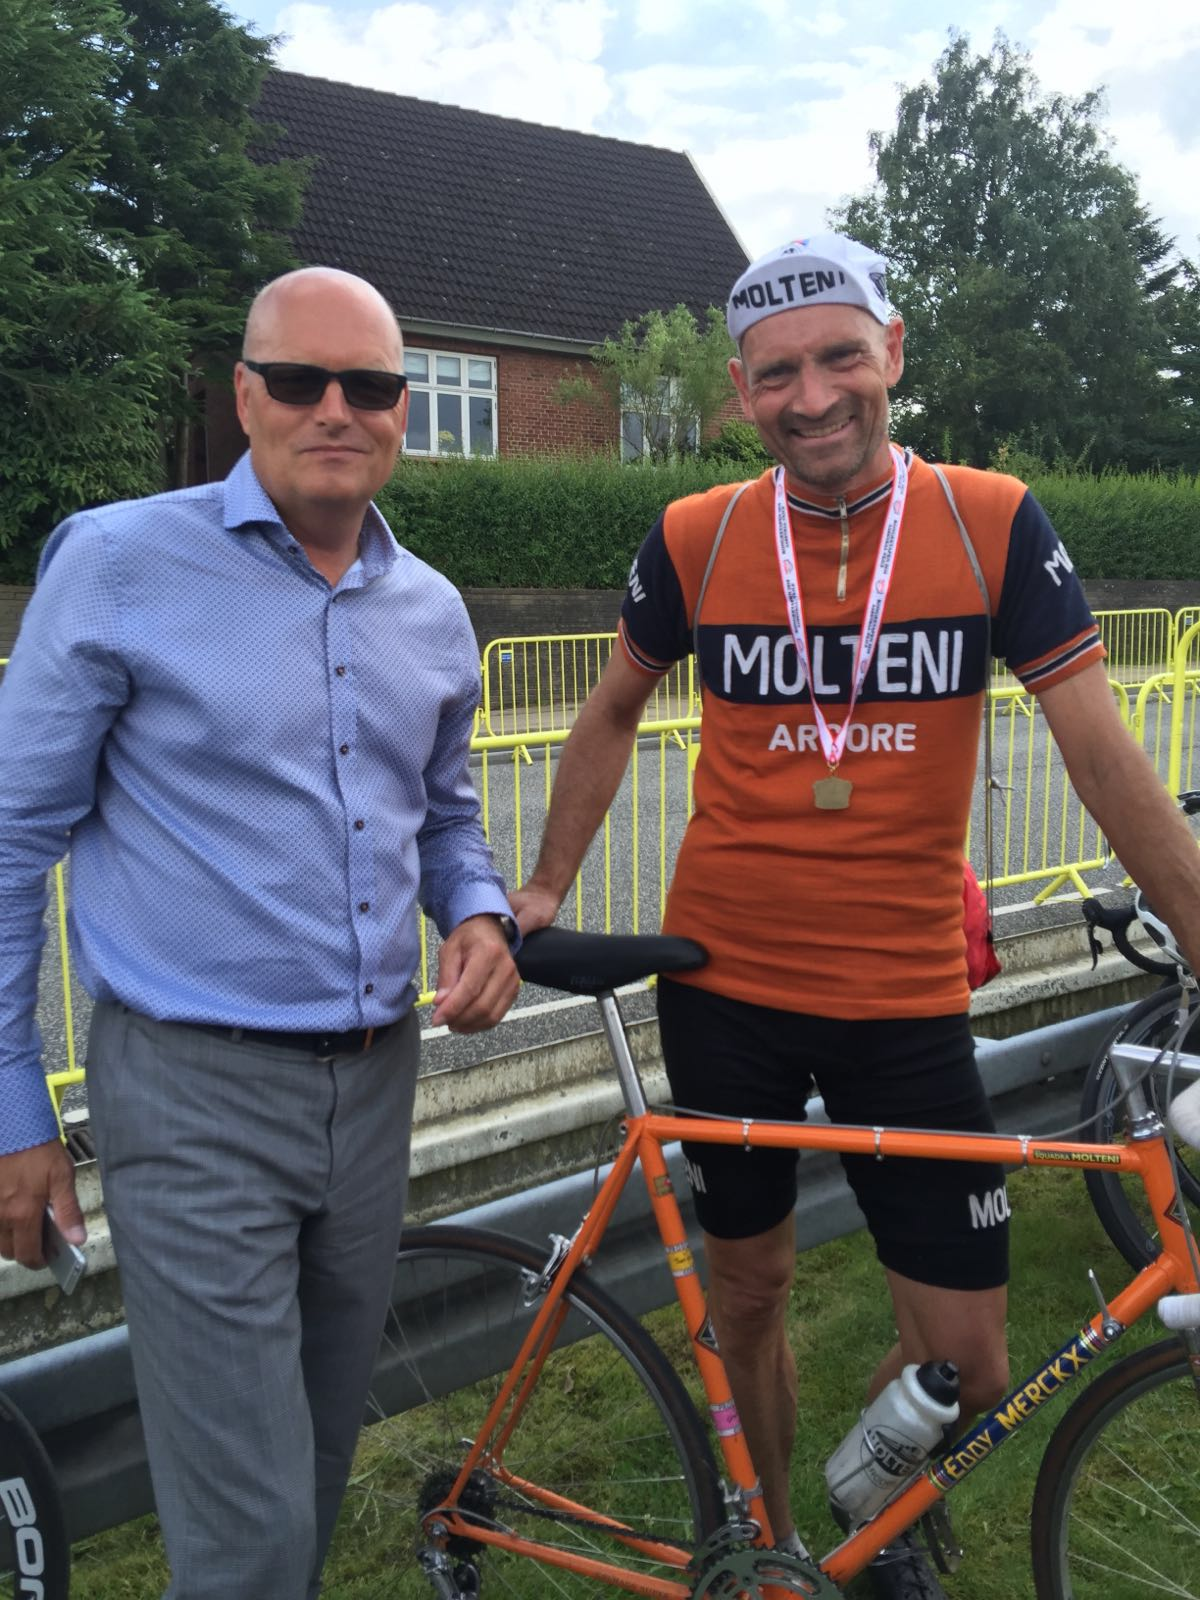 Bjarne Riis chatting with Moltene